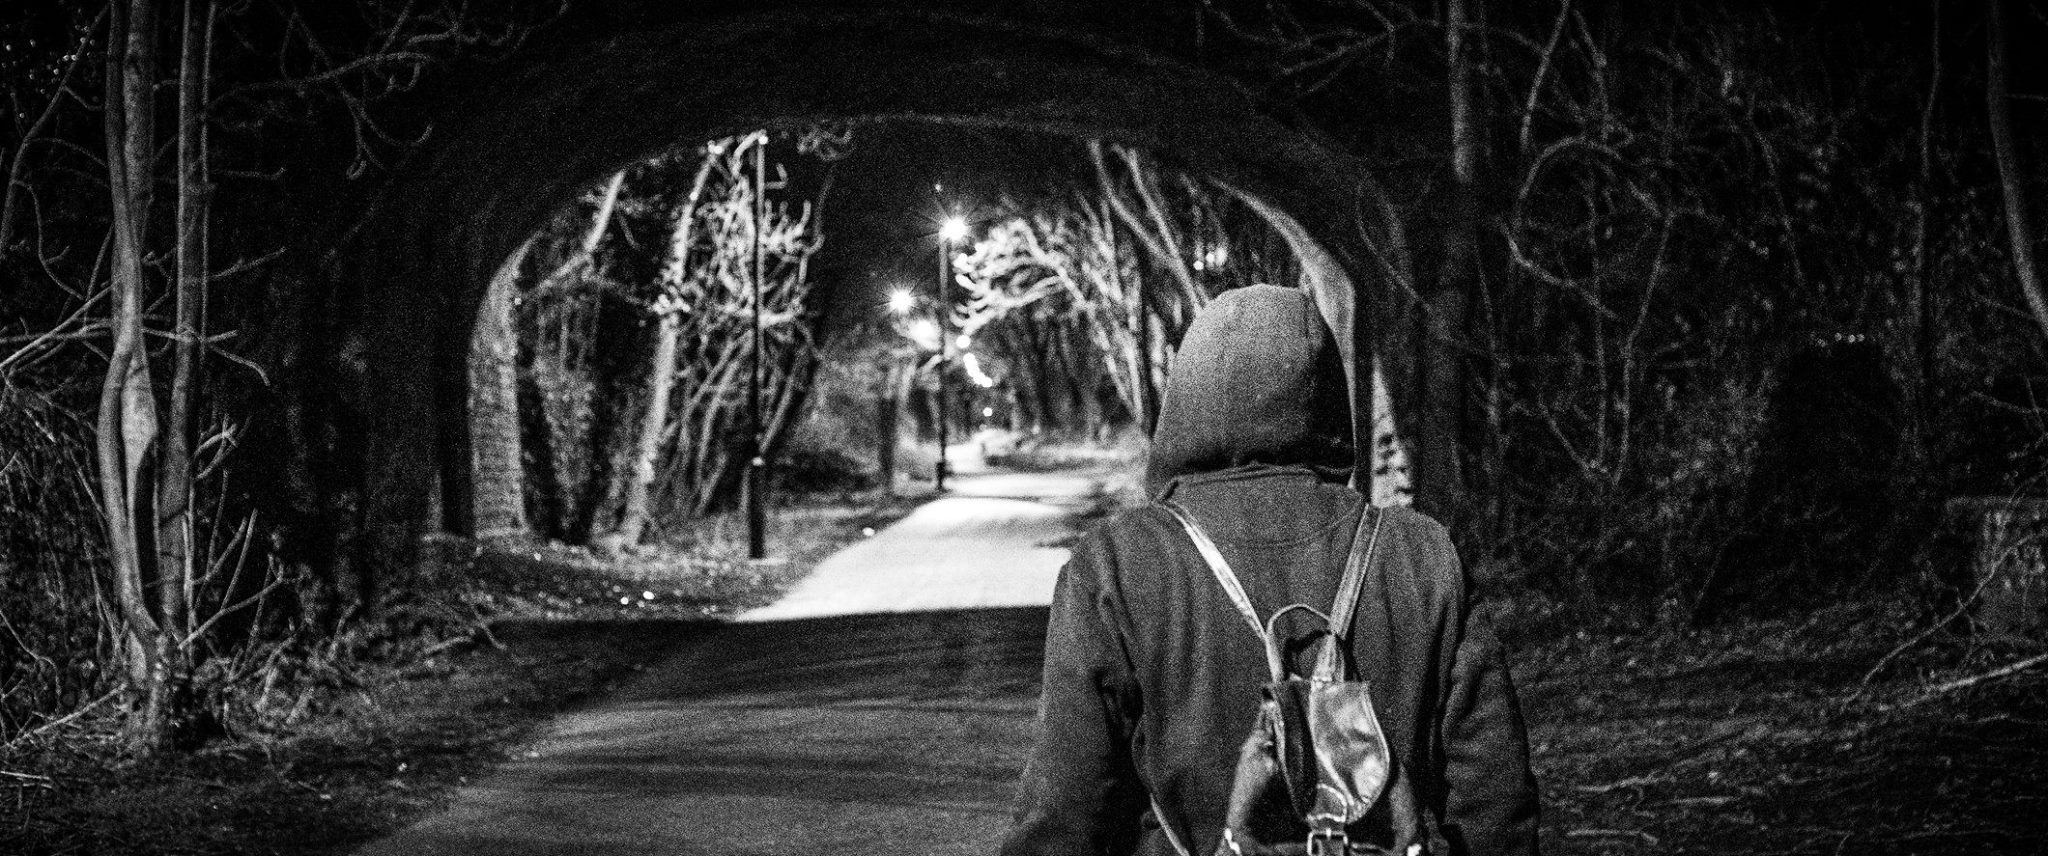 A black-and-white still of a woman shown from behind. She wears a hoodie and carries a backpack, while walking towards a tunnel. L